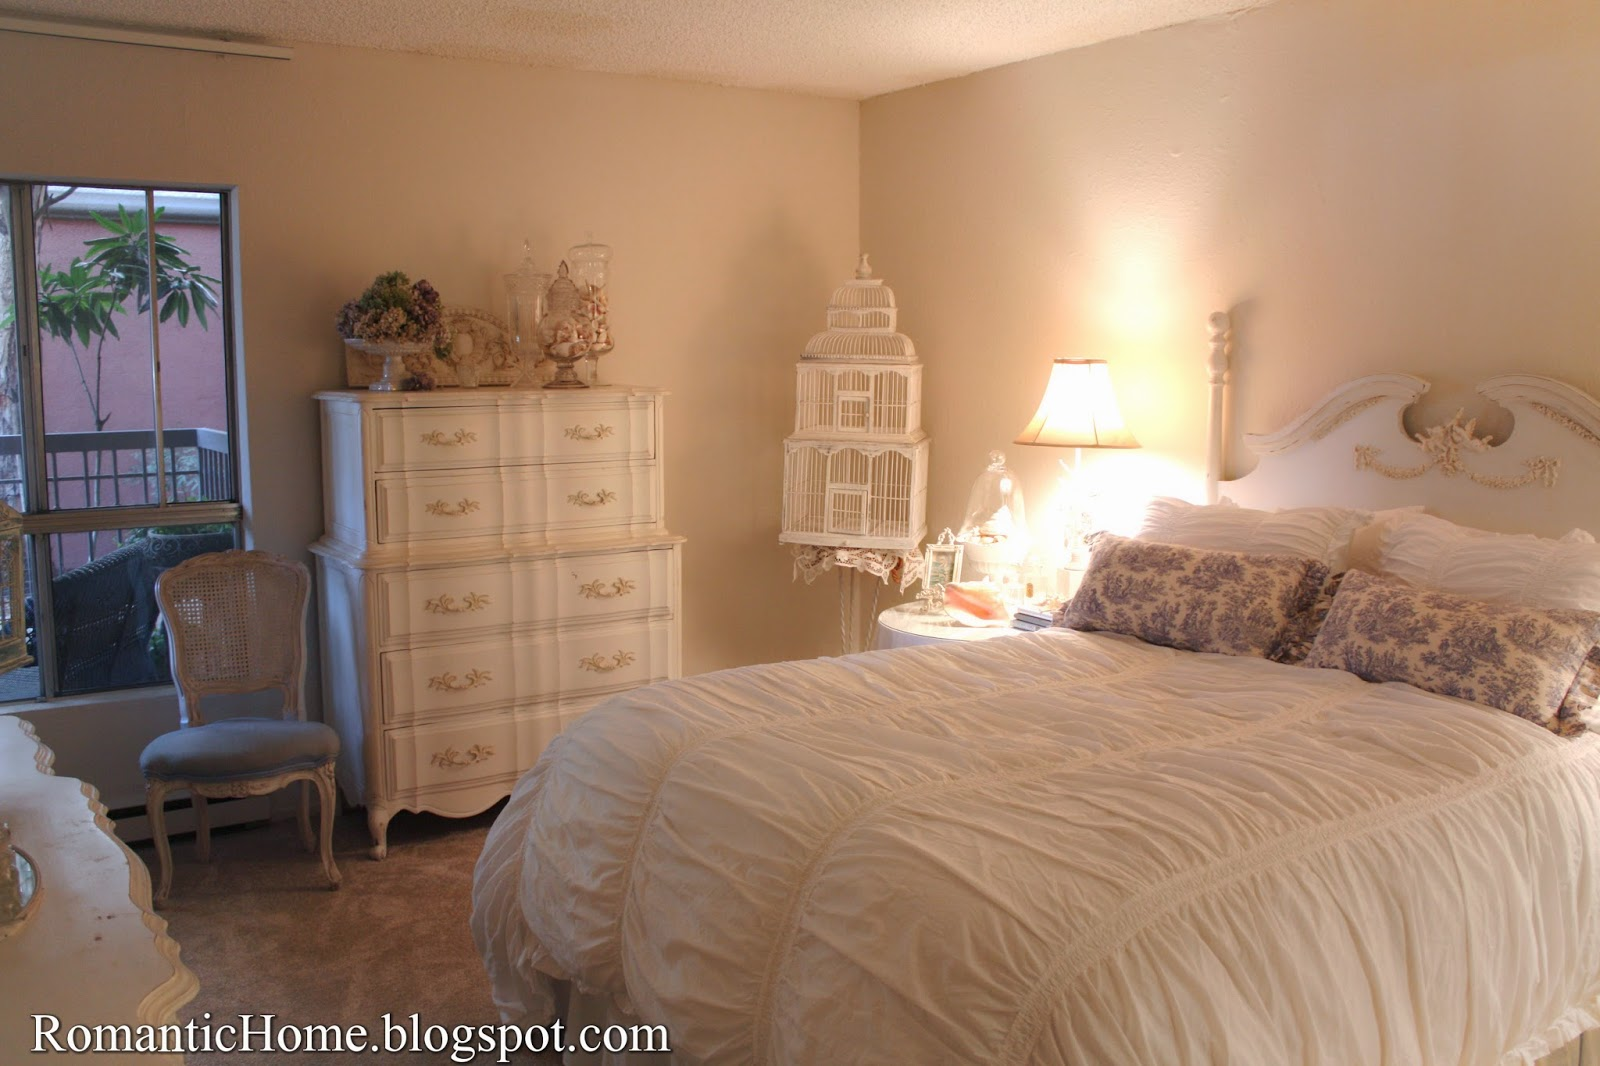 My Bedroom My Romantic Home The Bedroom Chair  Show And Tell Friday